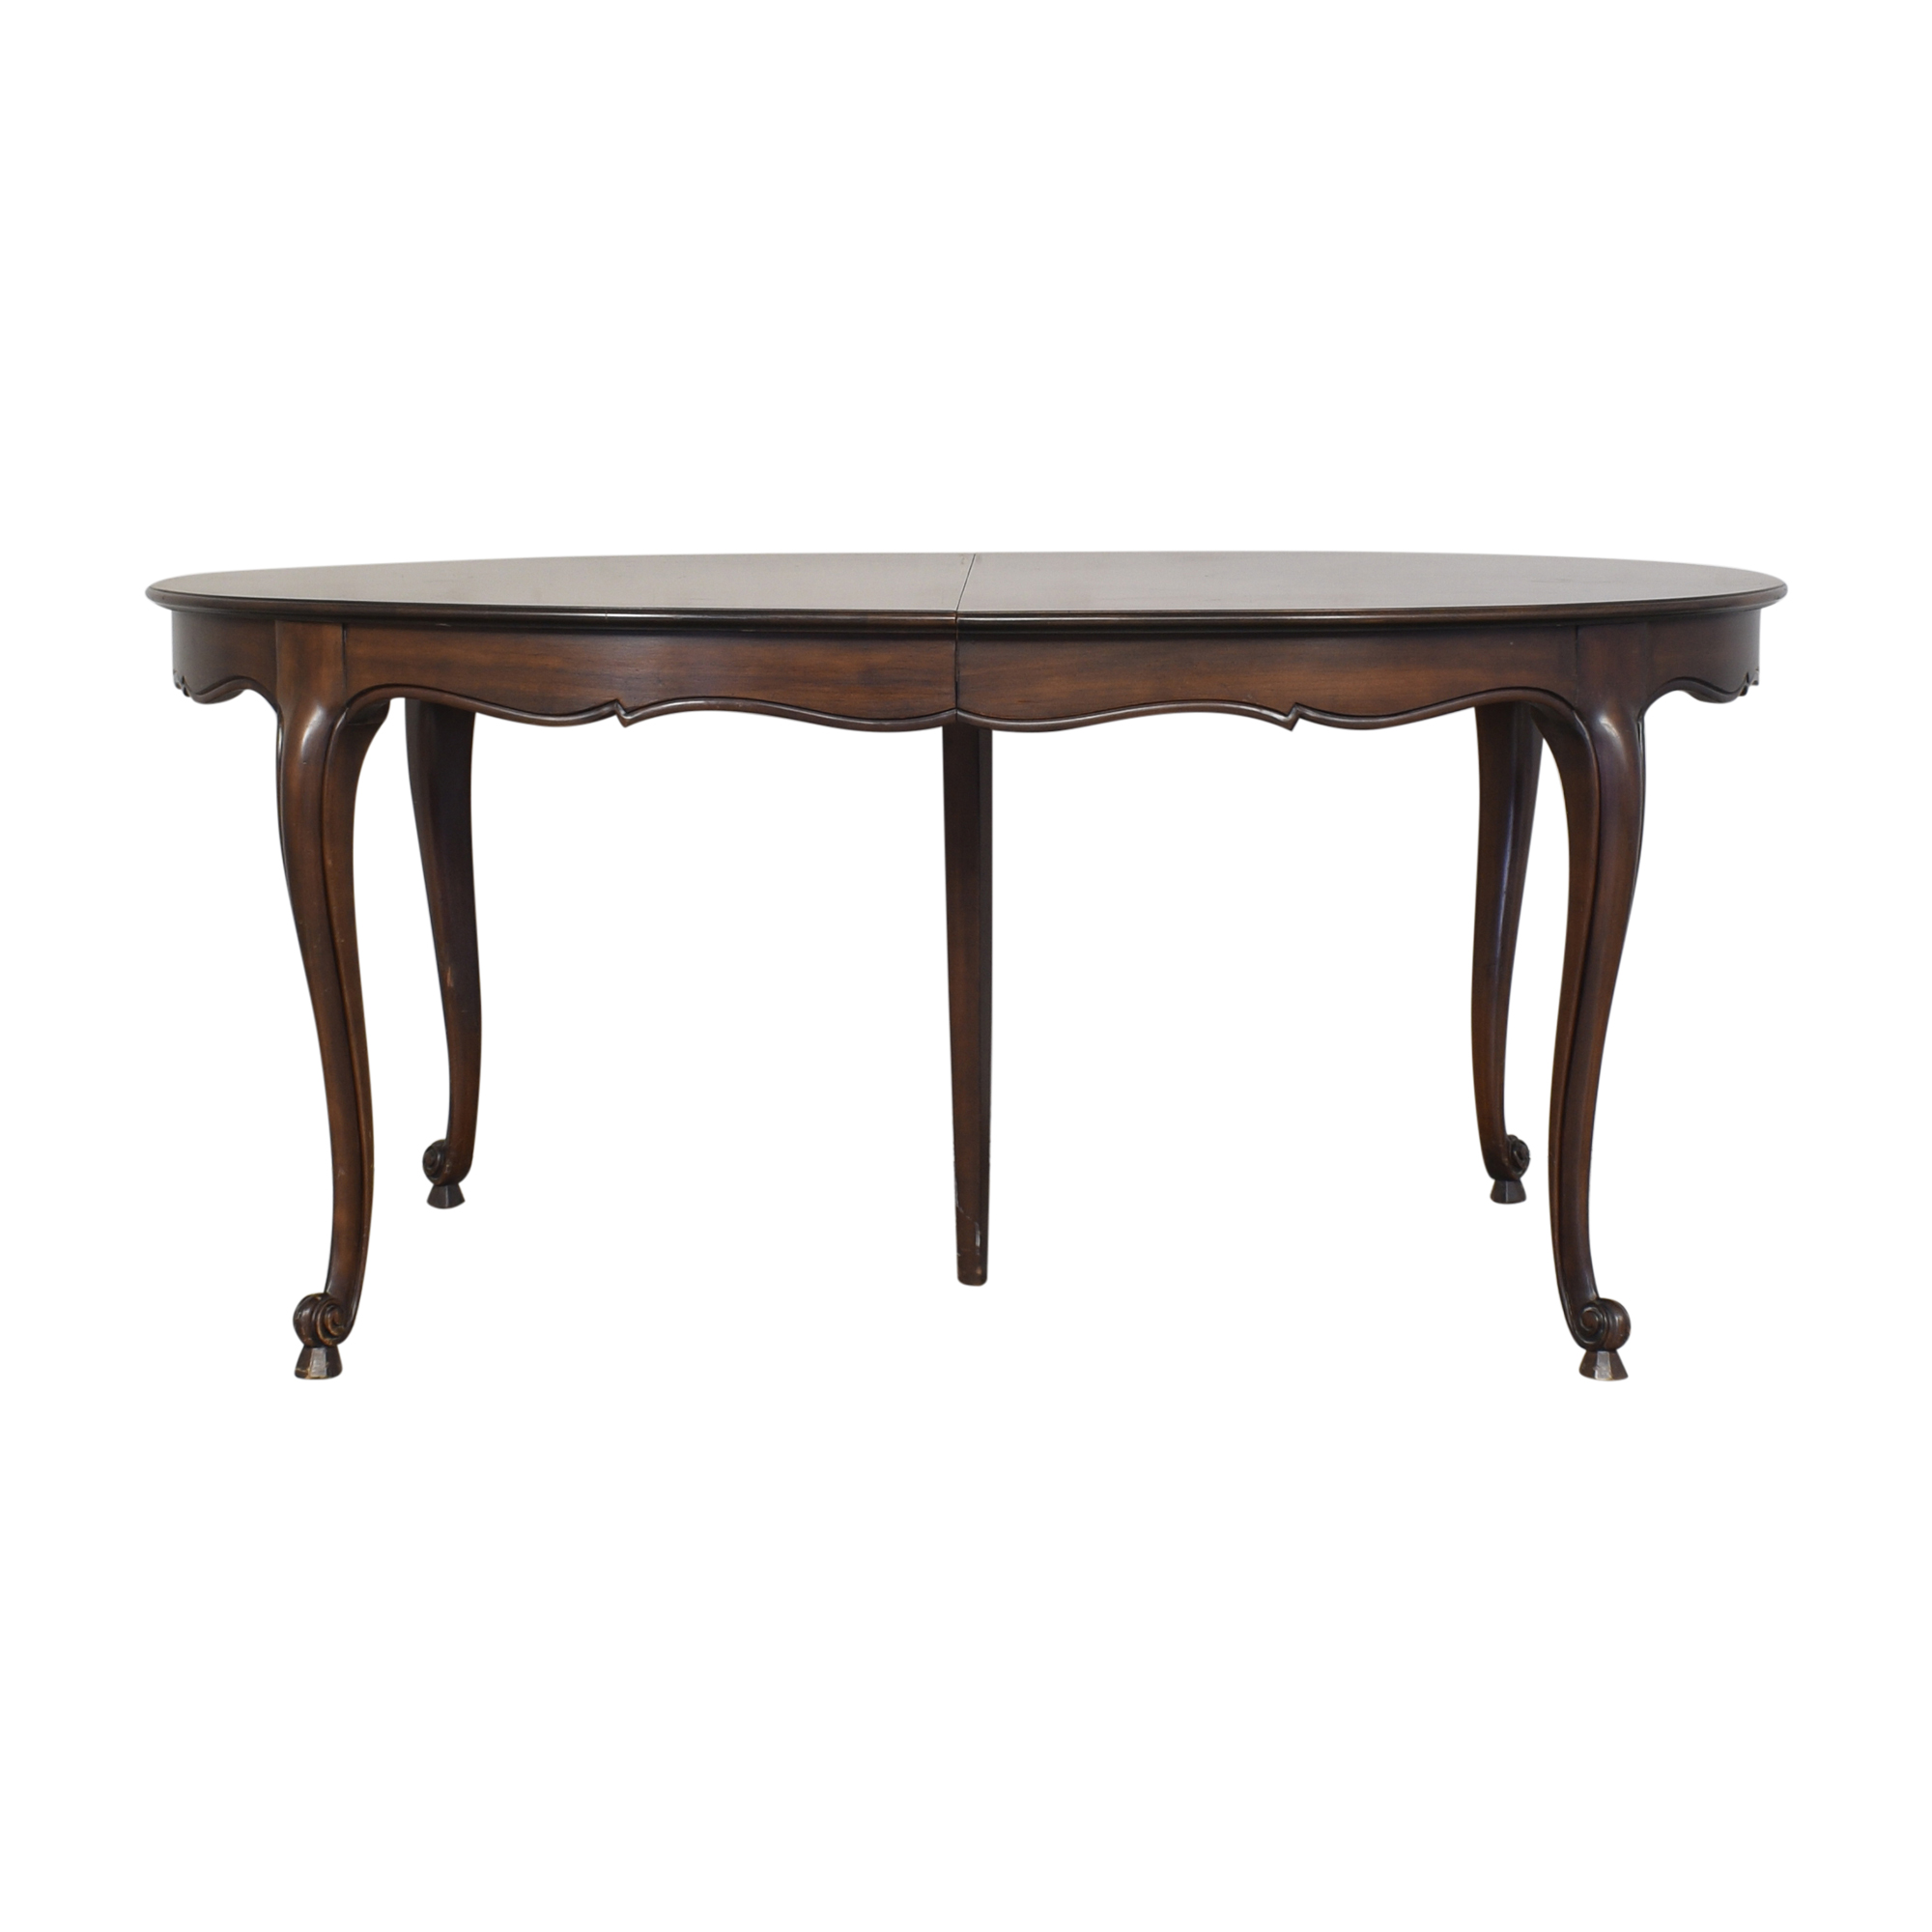 Kindel Kindel French Country Dining Table dimensions